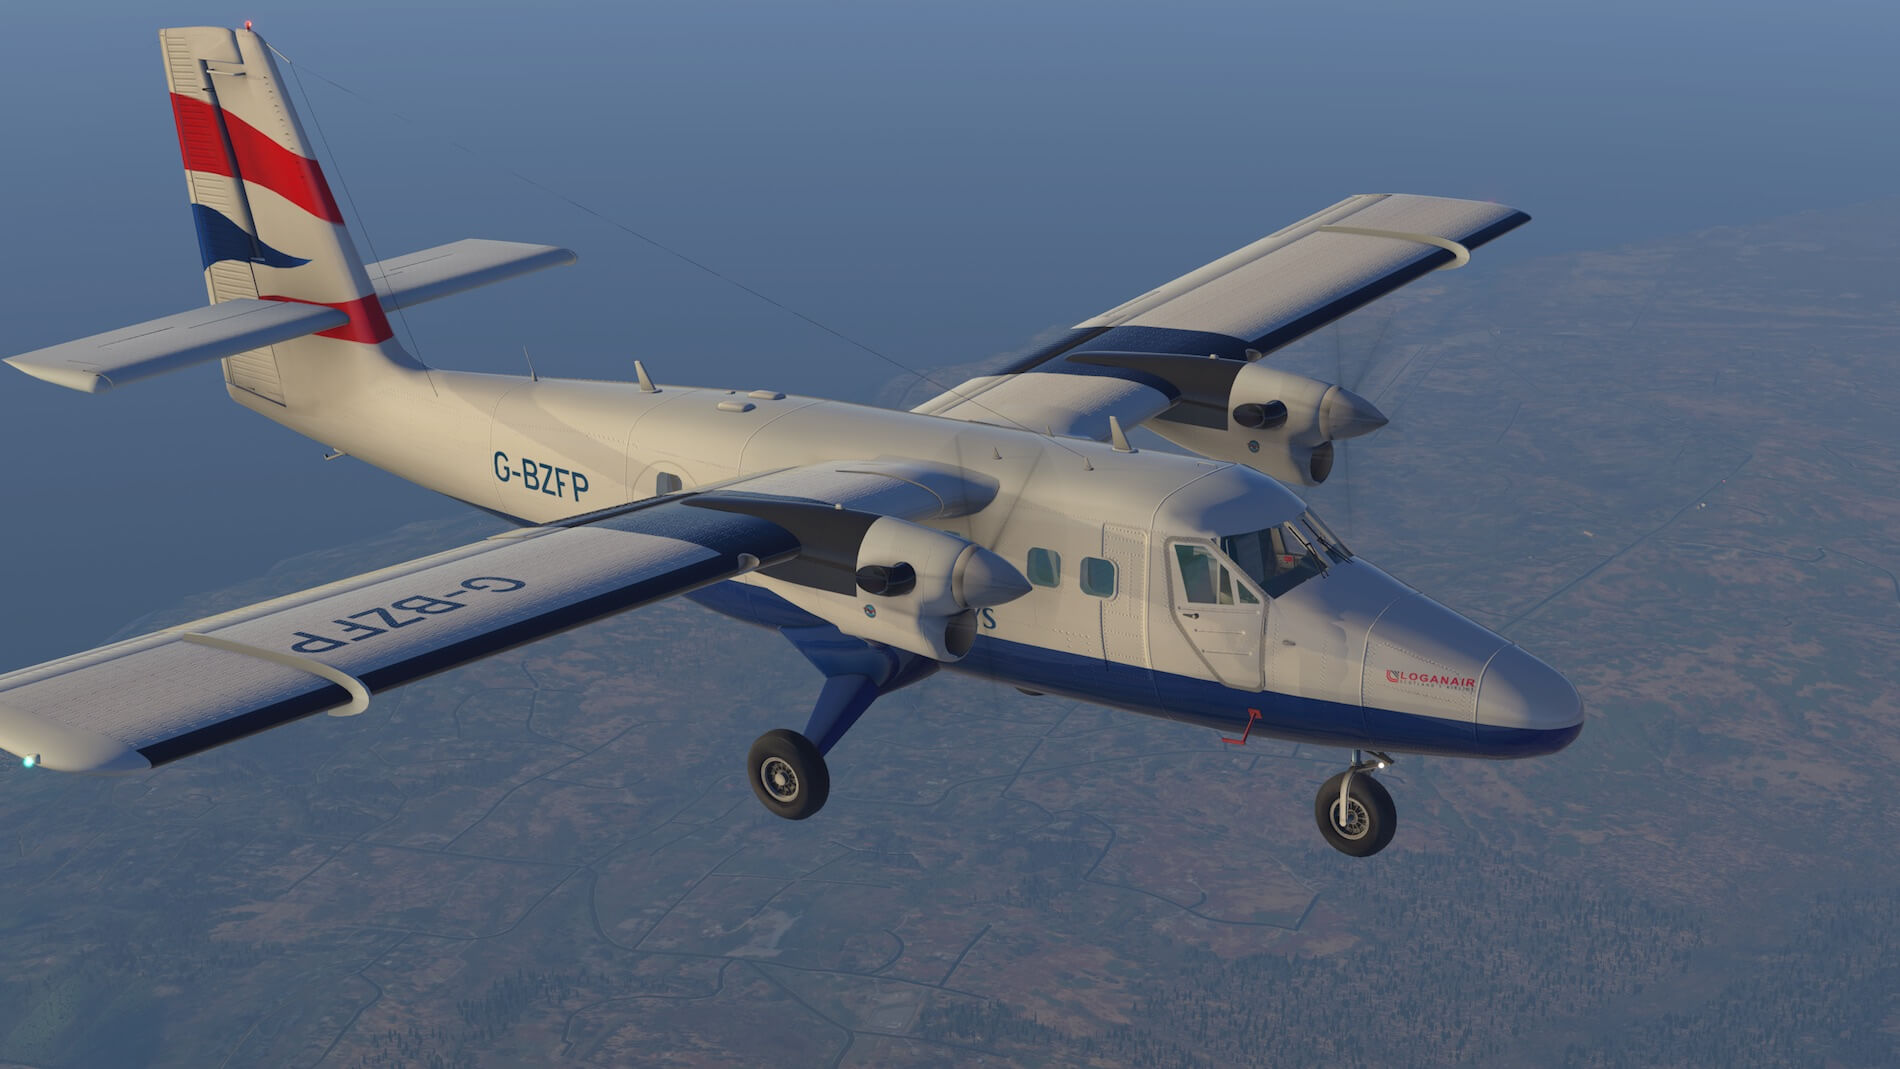 Review Rwdesigns Twin Otter X Plained The Source For All Your X Plane Articles